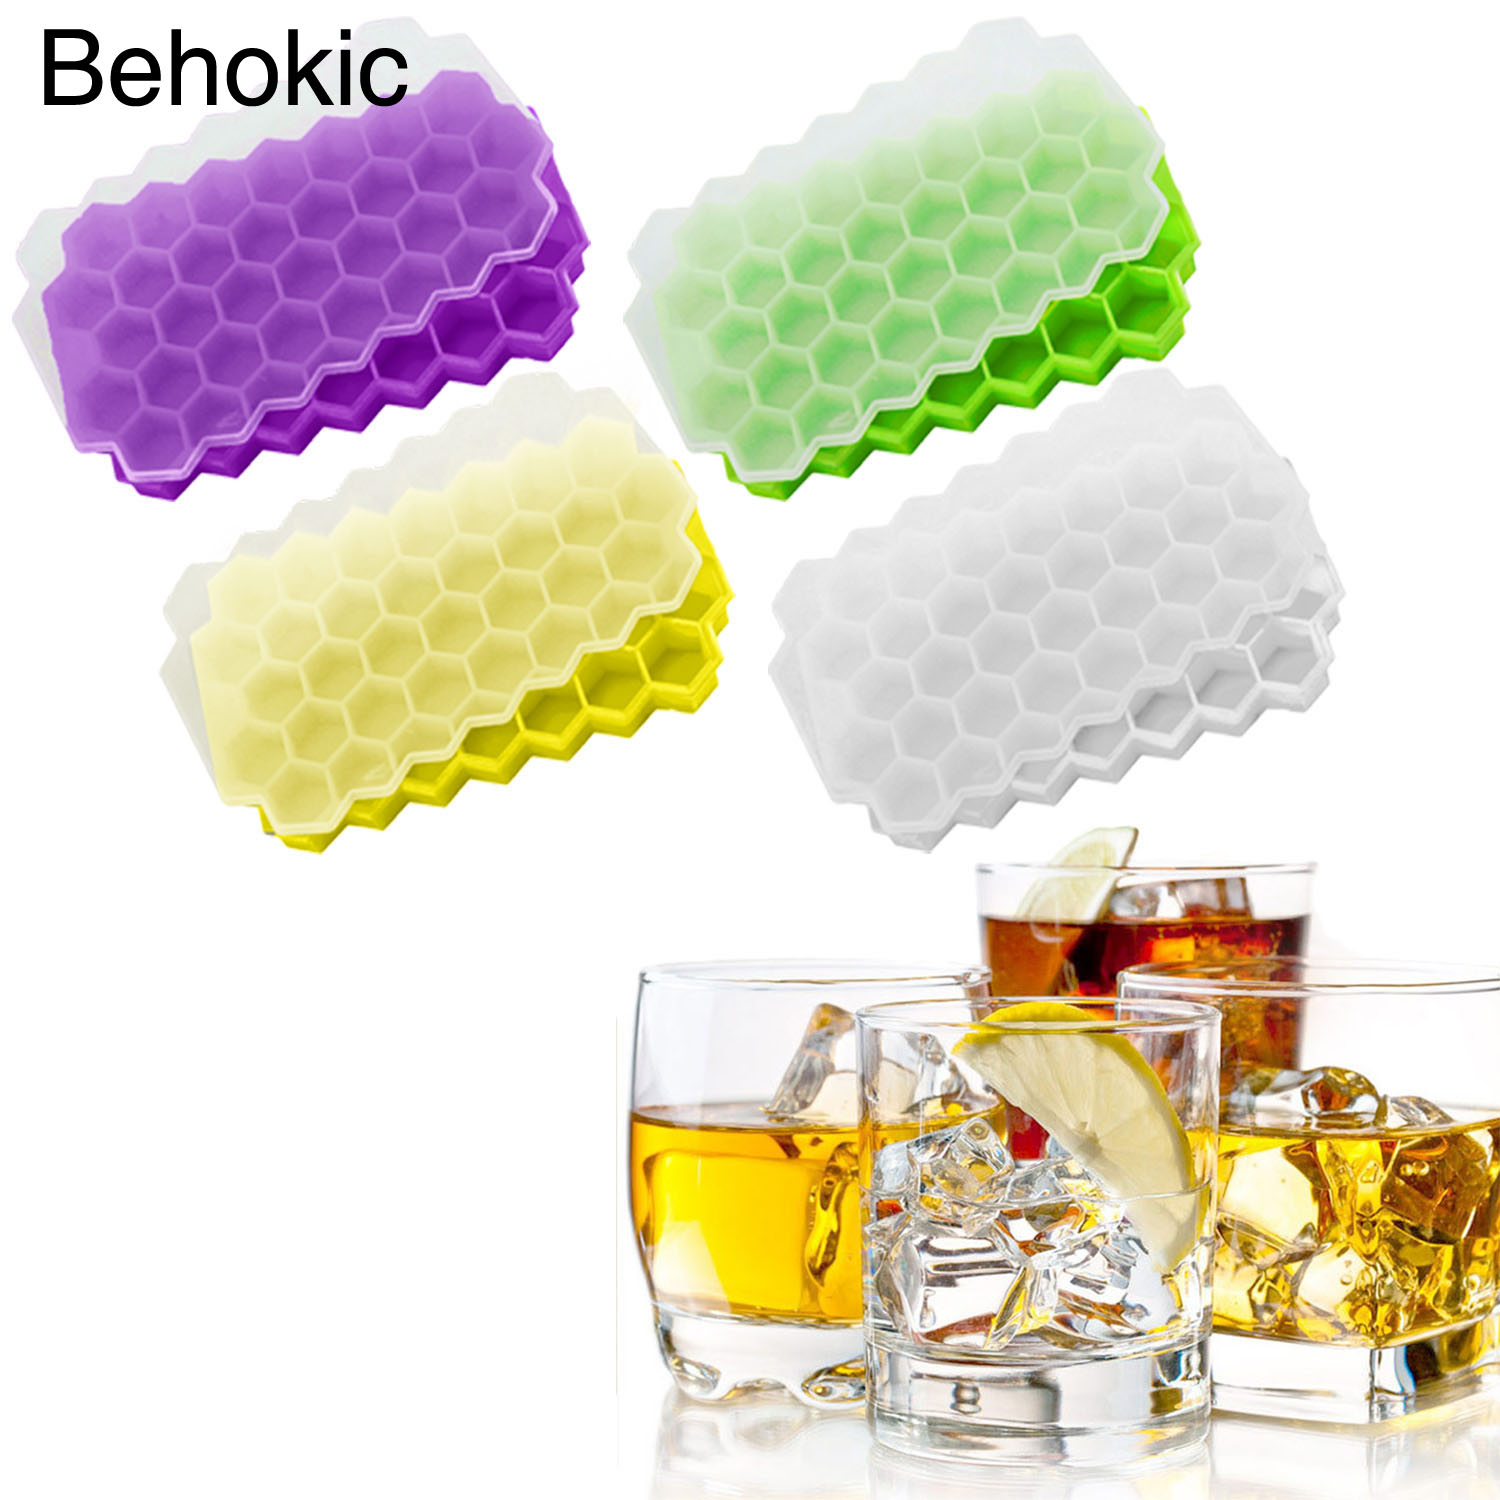 Behokic 37 Slots Silicone Honeycomb Shape Ice Cube Maker Mold Tray Ice Box with Lid for